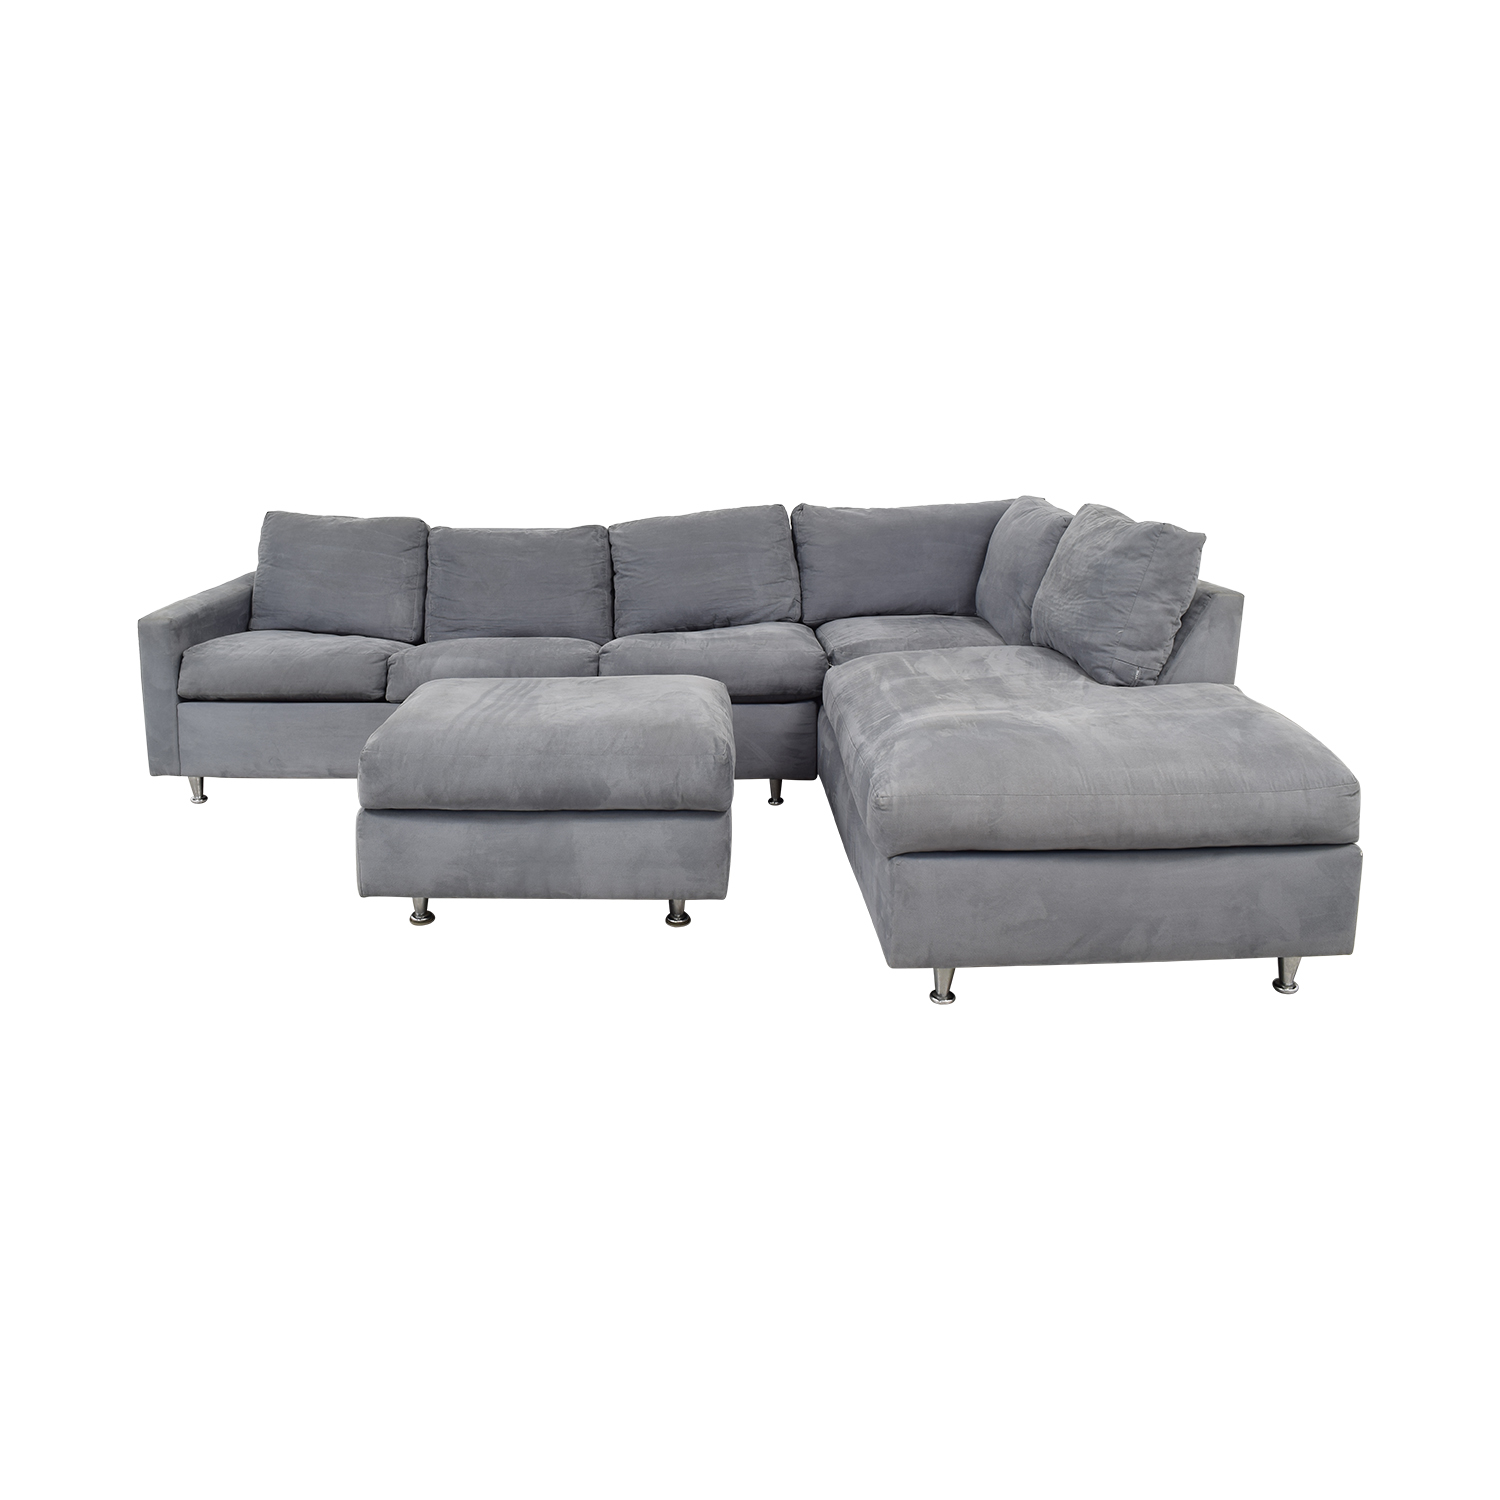 Prime 72 Off Jensen Lewis Jensen Lewis Grey Ultrasuede Chaise Sectional With Ottoman And Queen Convertible Sofas Camellatalisay Diy Chair Ideas Camellatalisaycom